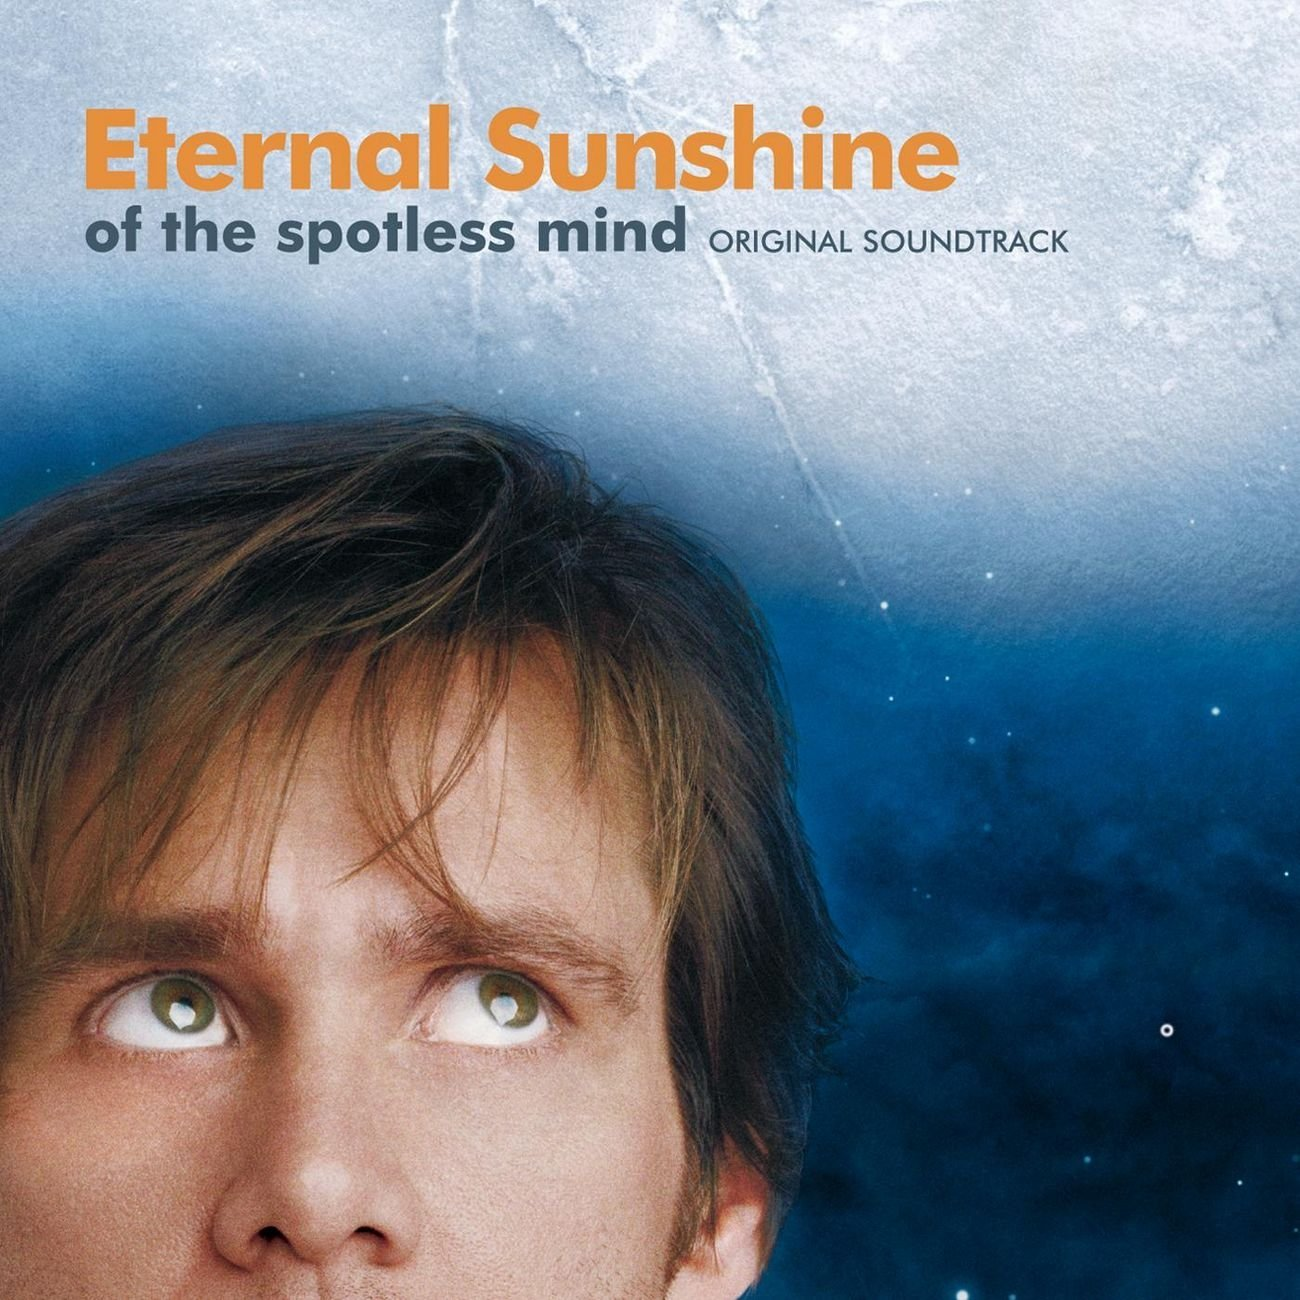 essay about eternal sunshine of the spotless mind Eternal sunshine of the spotless mind theme essay introduction minor changes that can make major differences a few facelift facts vitamin c and your.